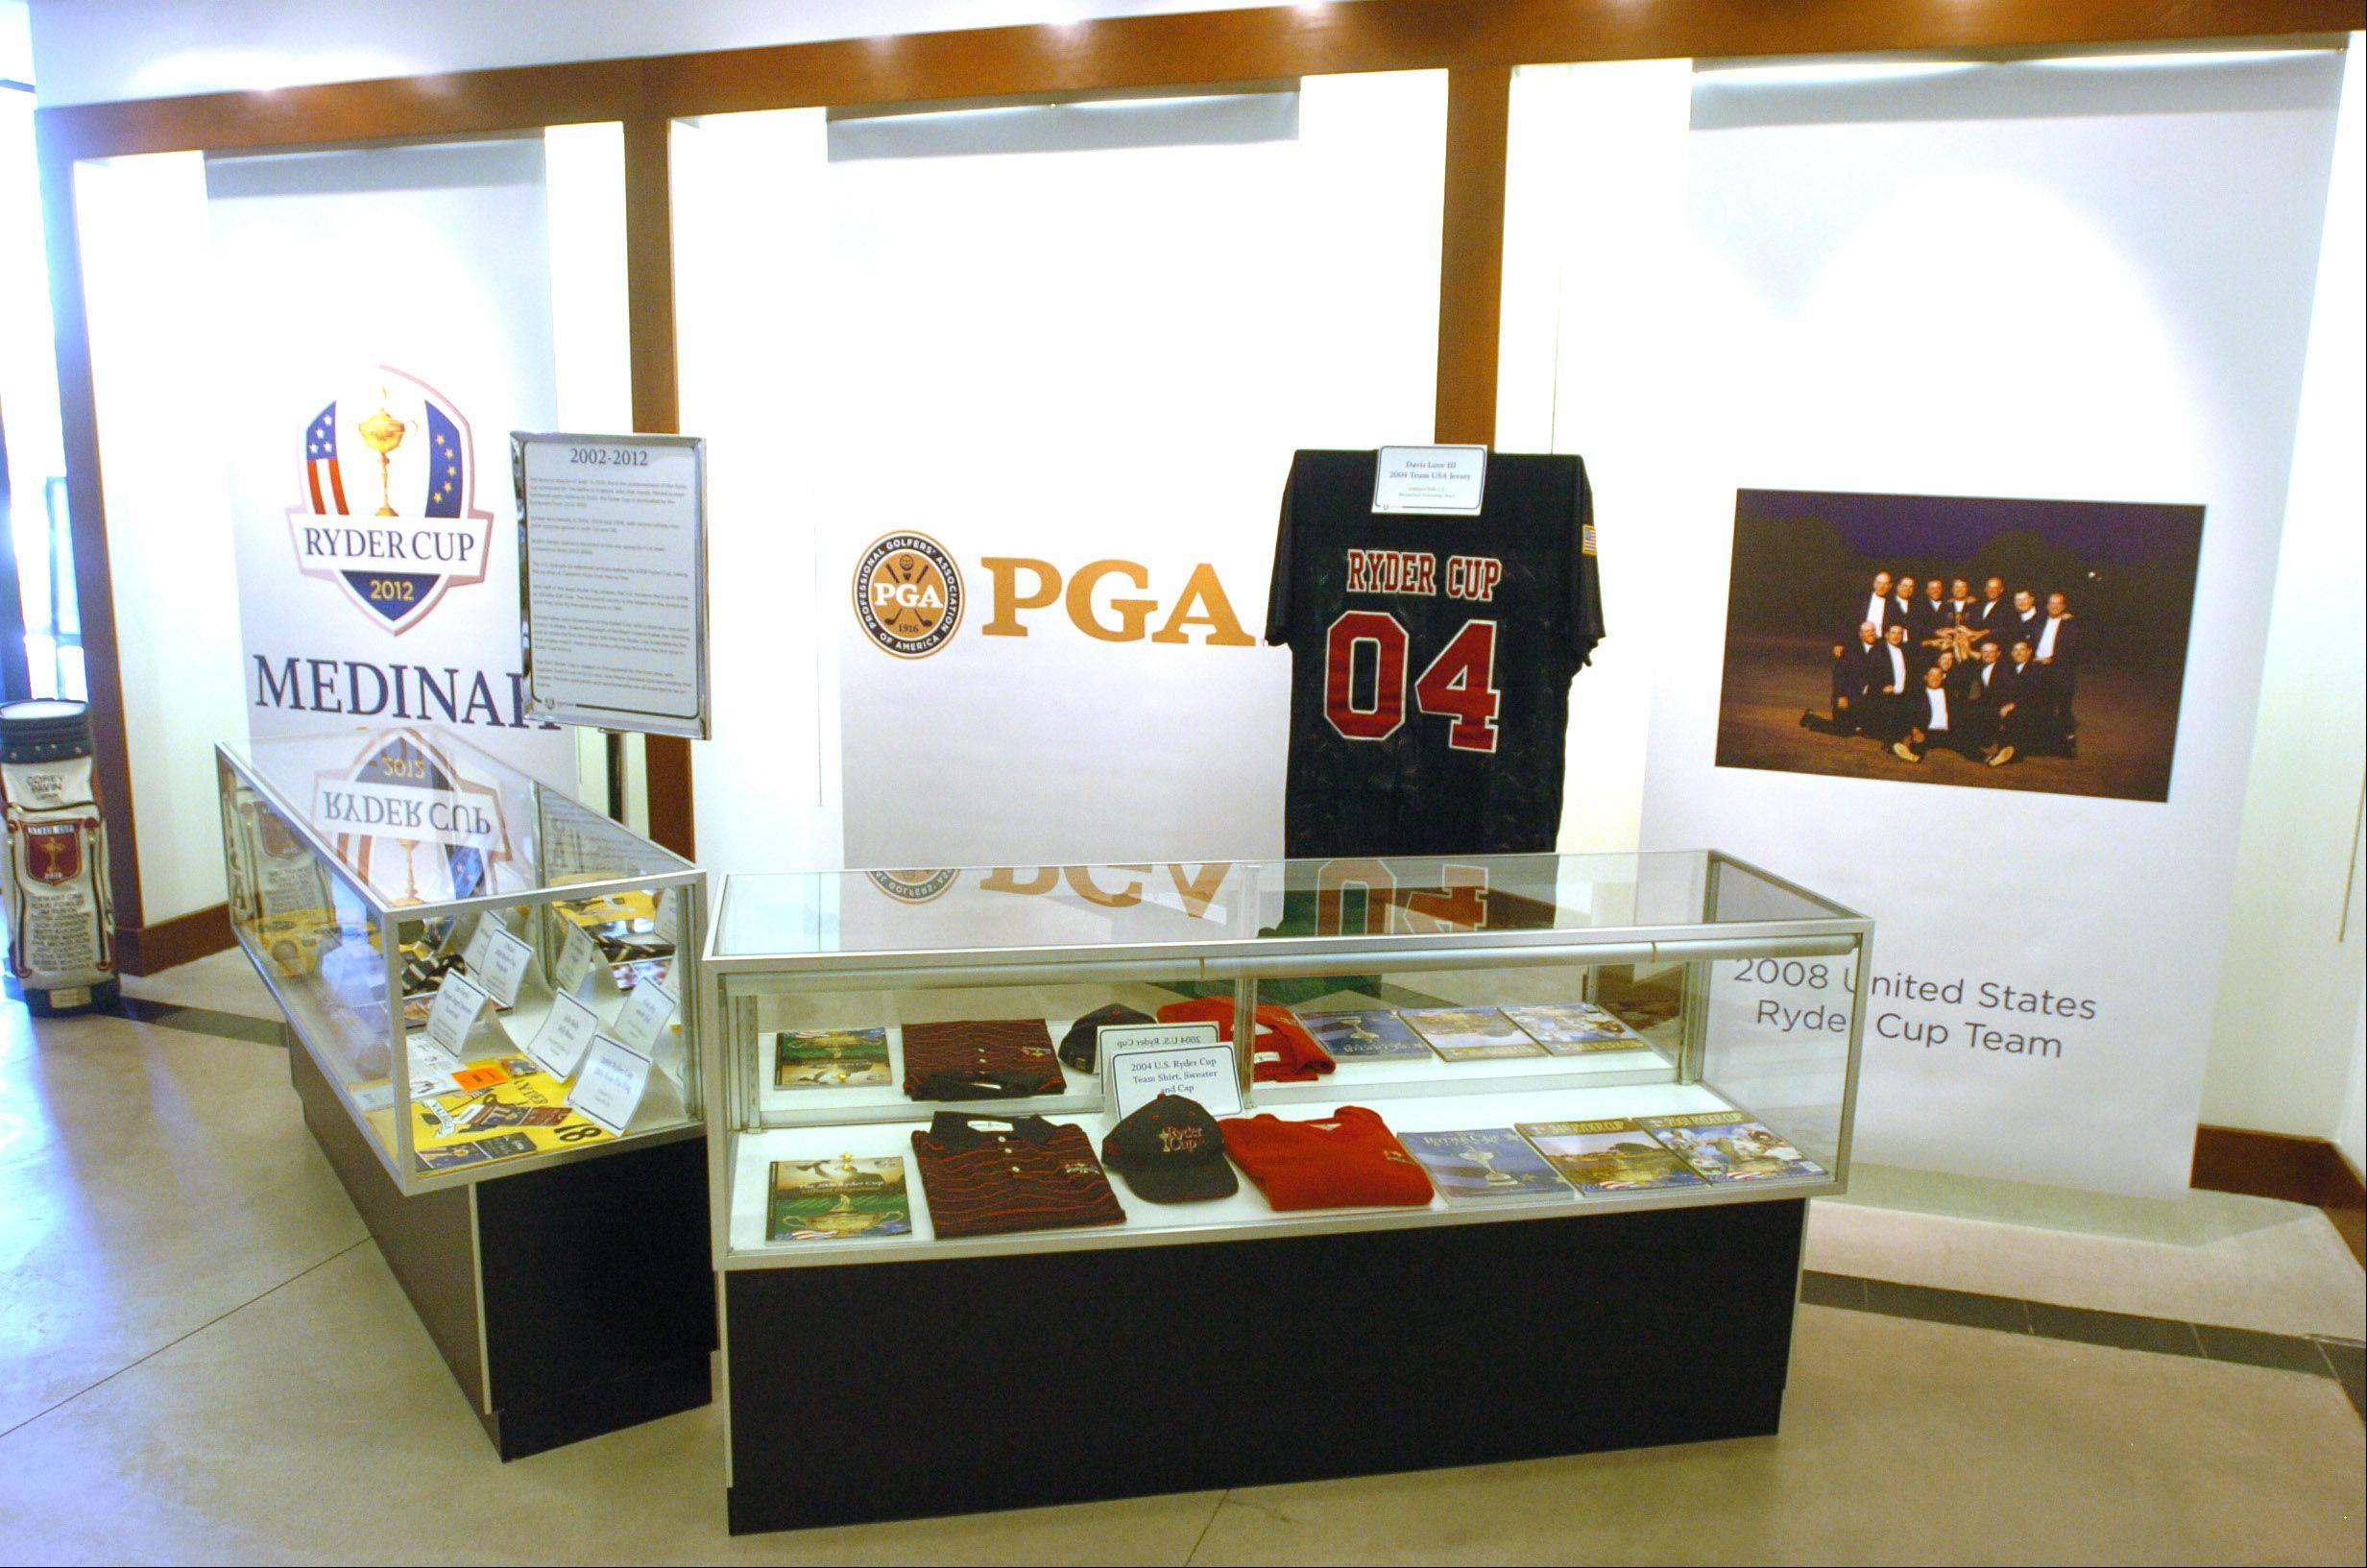 Ryder Cup exhibit puts its history on display